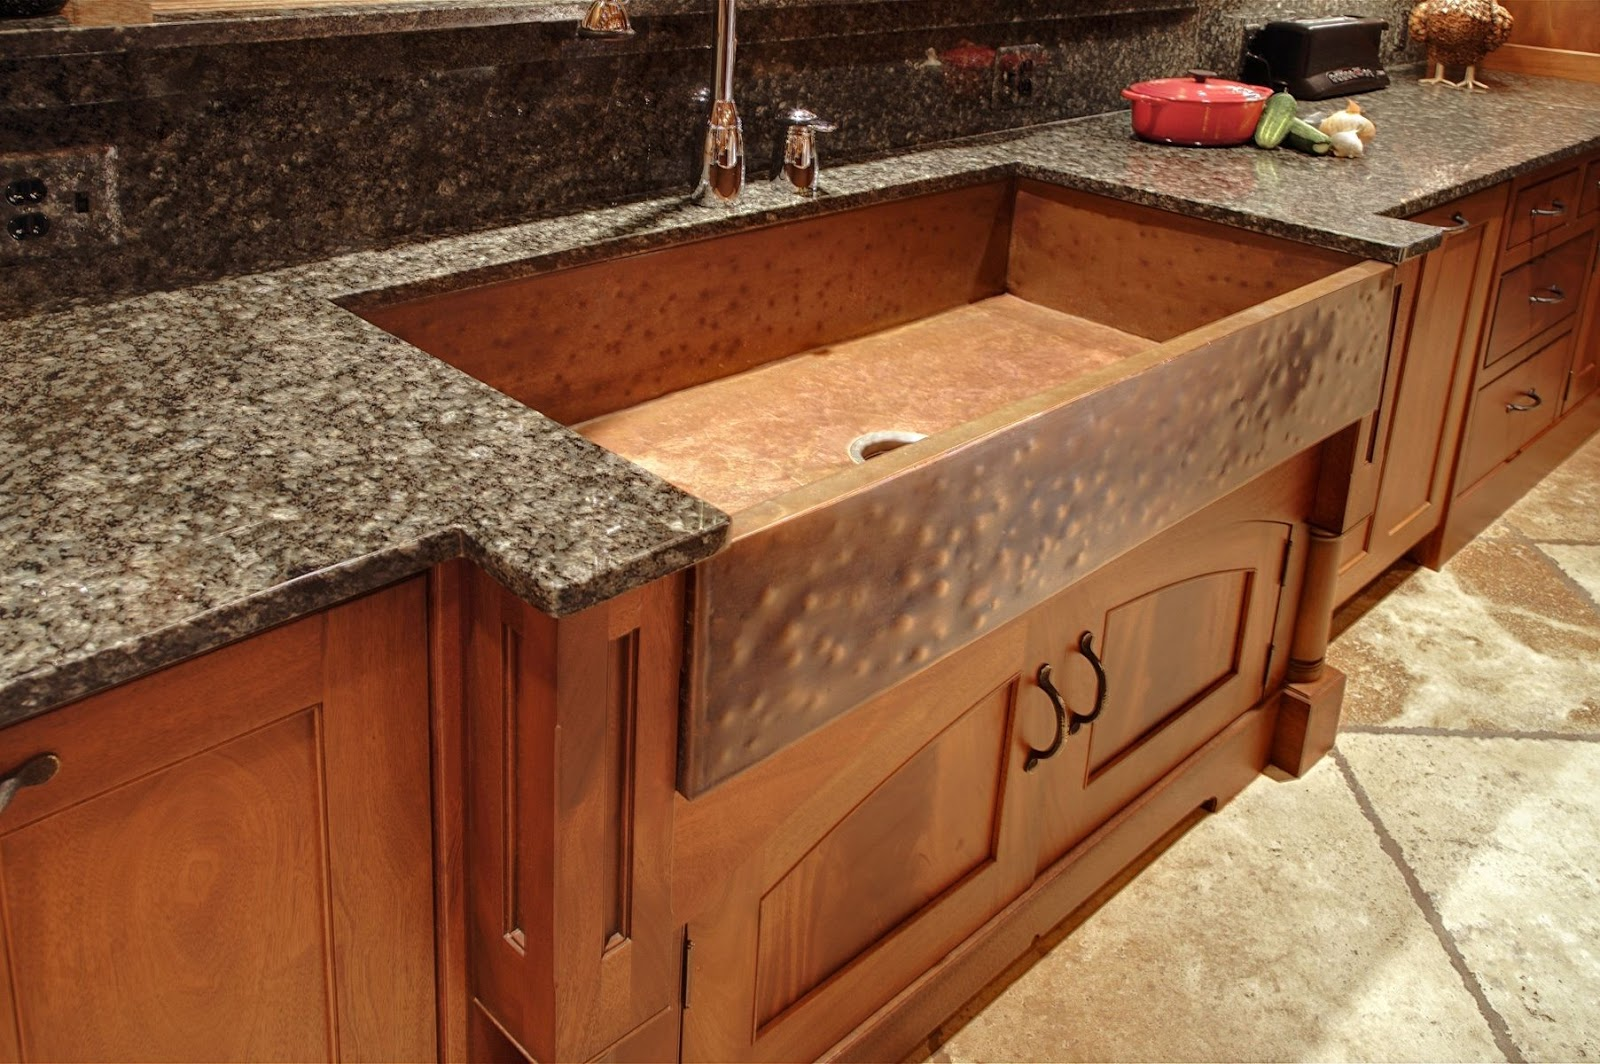 30 New Kitchen Sink Designs For Granite Countertops ... on Farmhouse Granite Countertops  id=51683